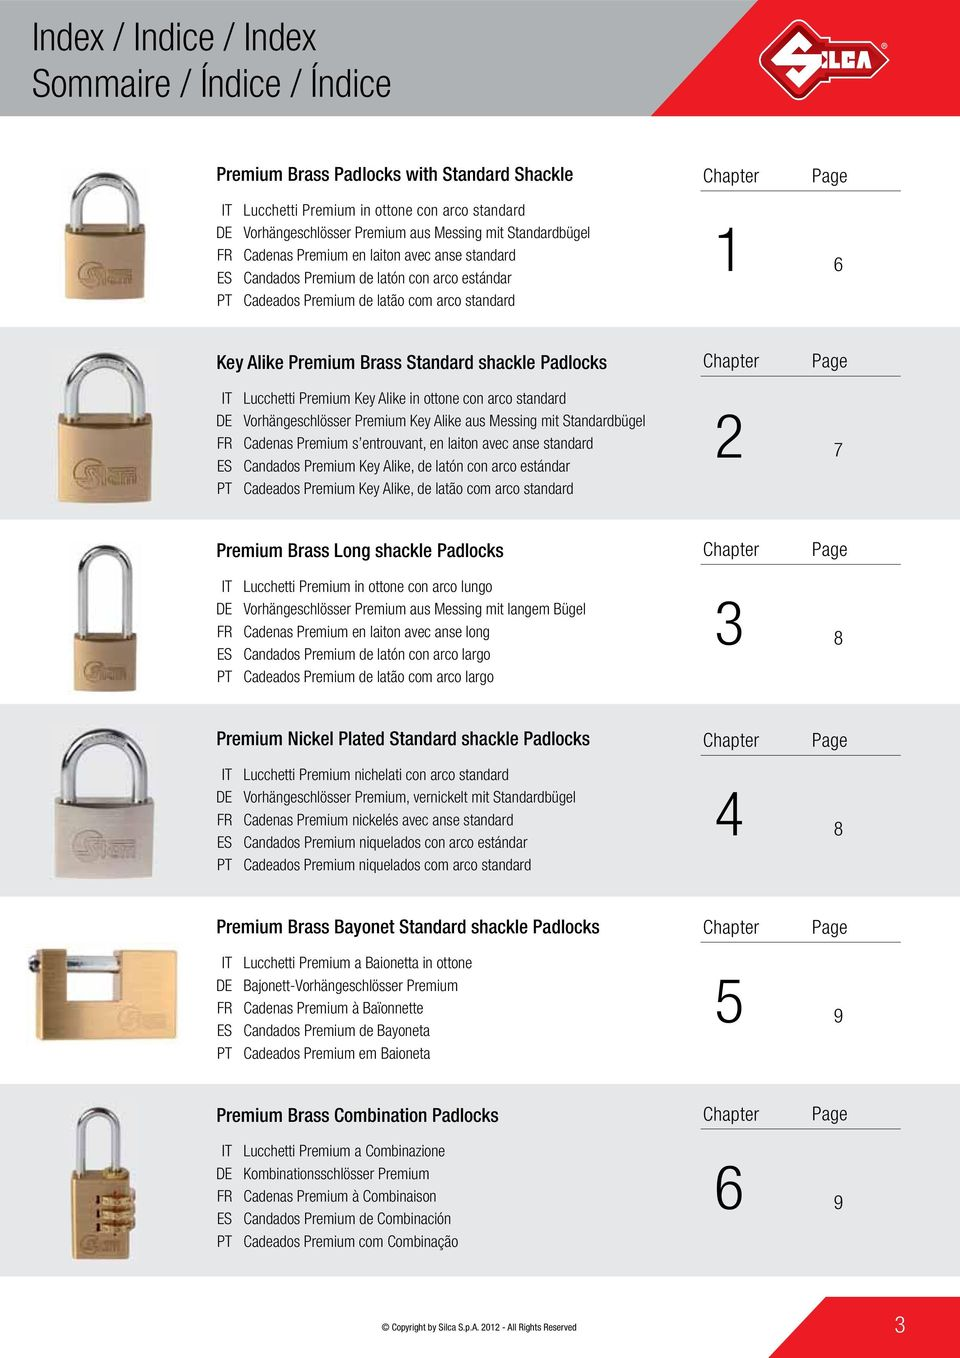 shackle Padlocks IT DE FR ES PT Lucchetti Premium Key Alike in ottone con arco standard Vorhängeschlösser Premium Key Alike aus Messing mit Standardbügel Cadenas Premium s entrouvant, en laiton avec